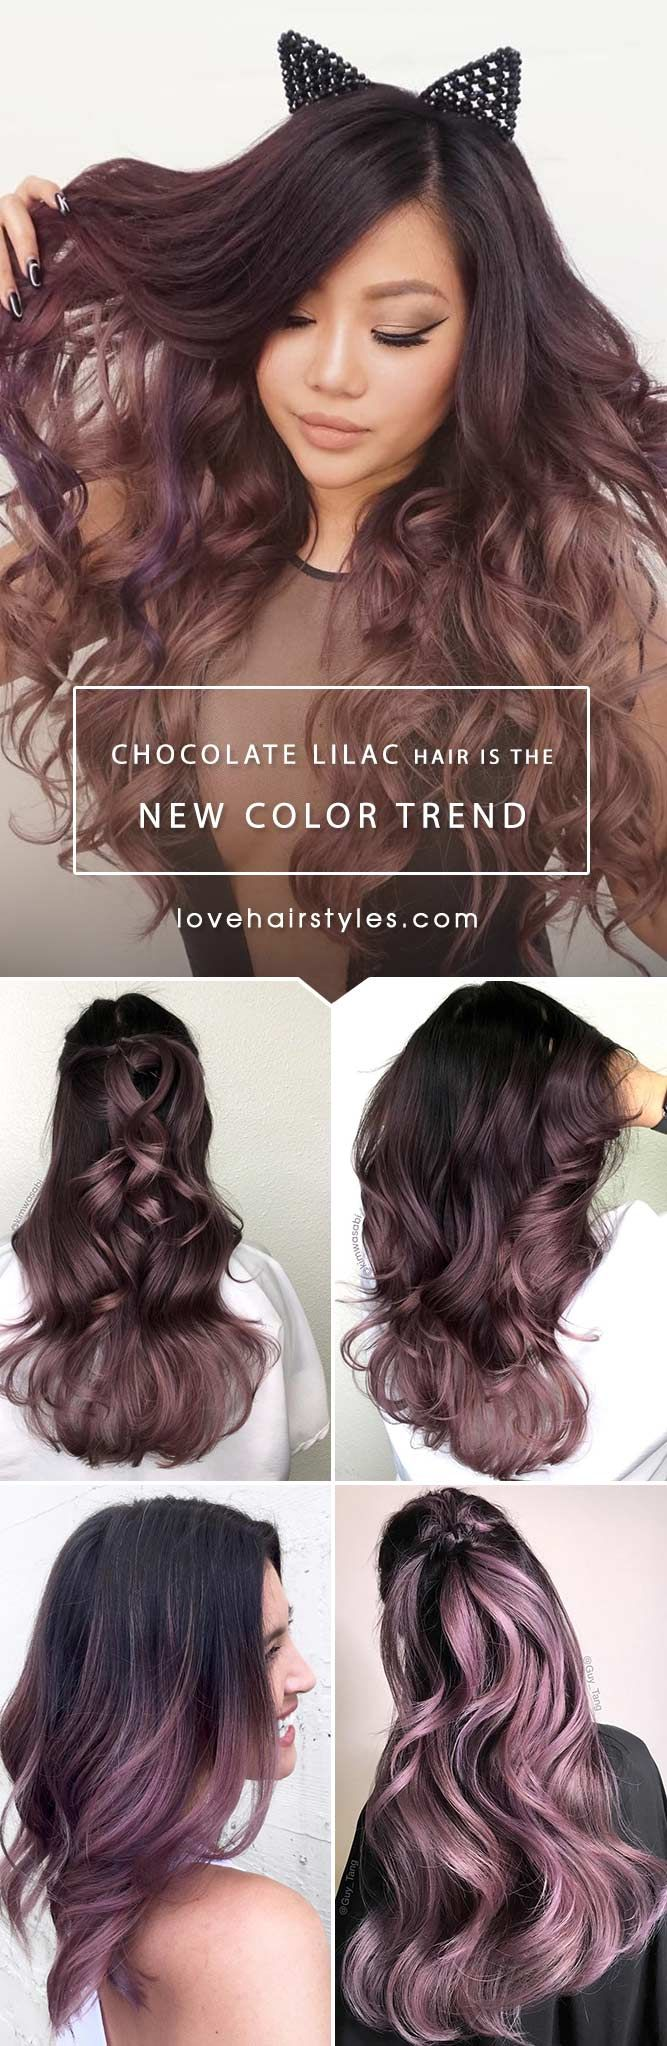 Chocolate lilac hair has become trendy these days. Have you already seen all the latest hot shades? You can observe them in our photo gallery.